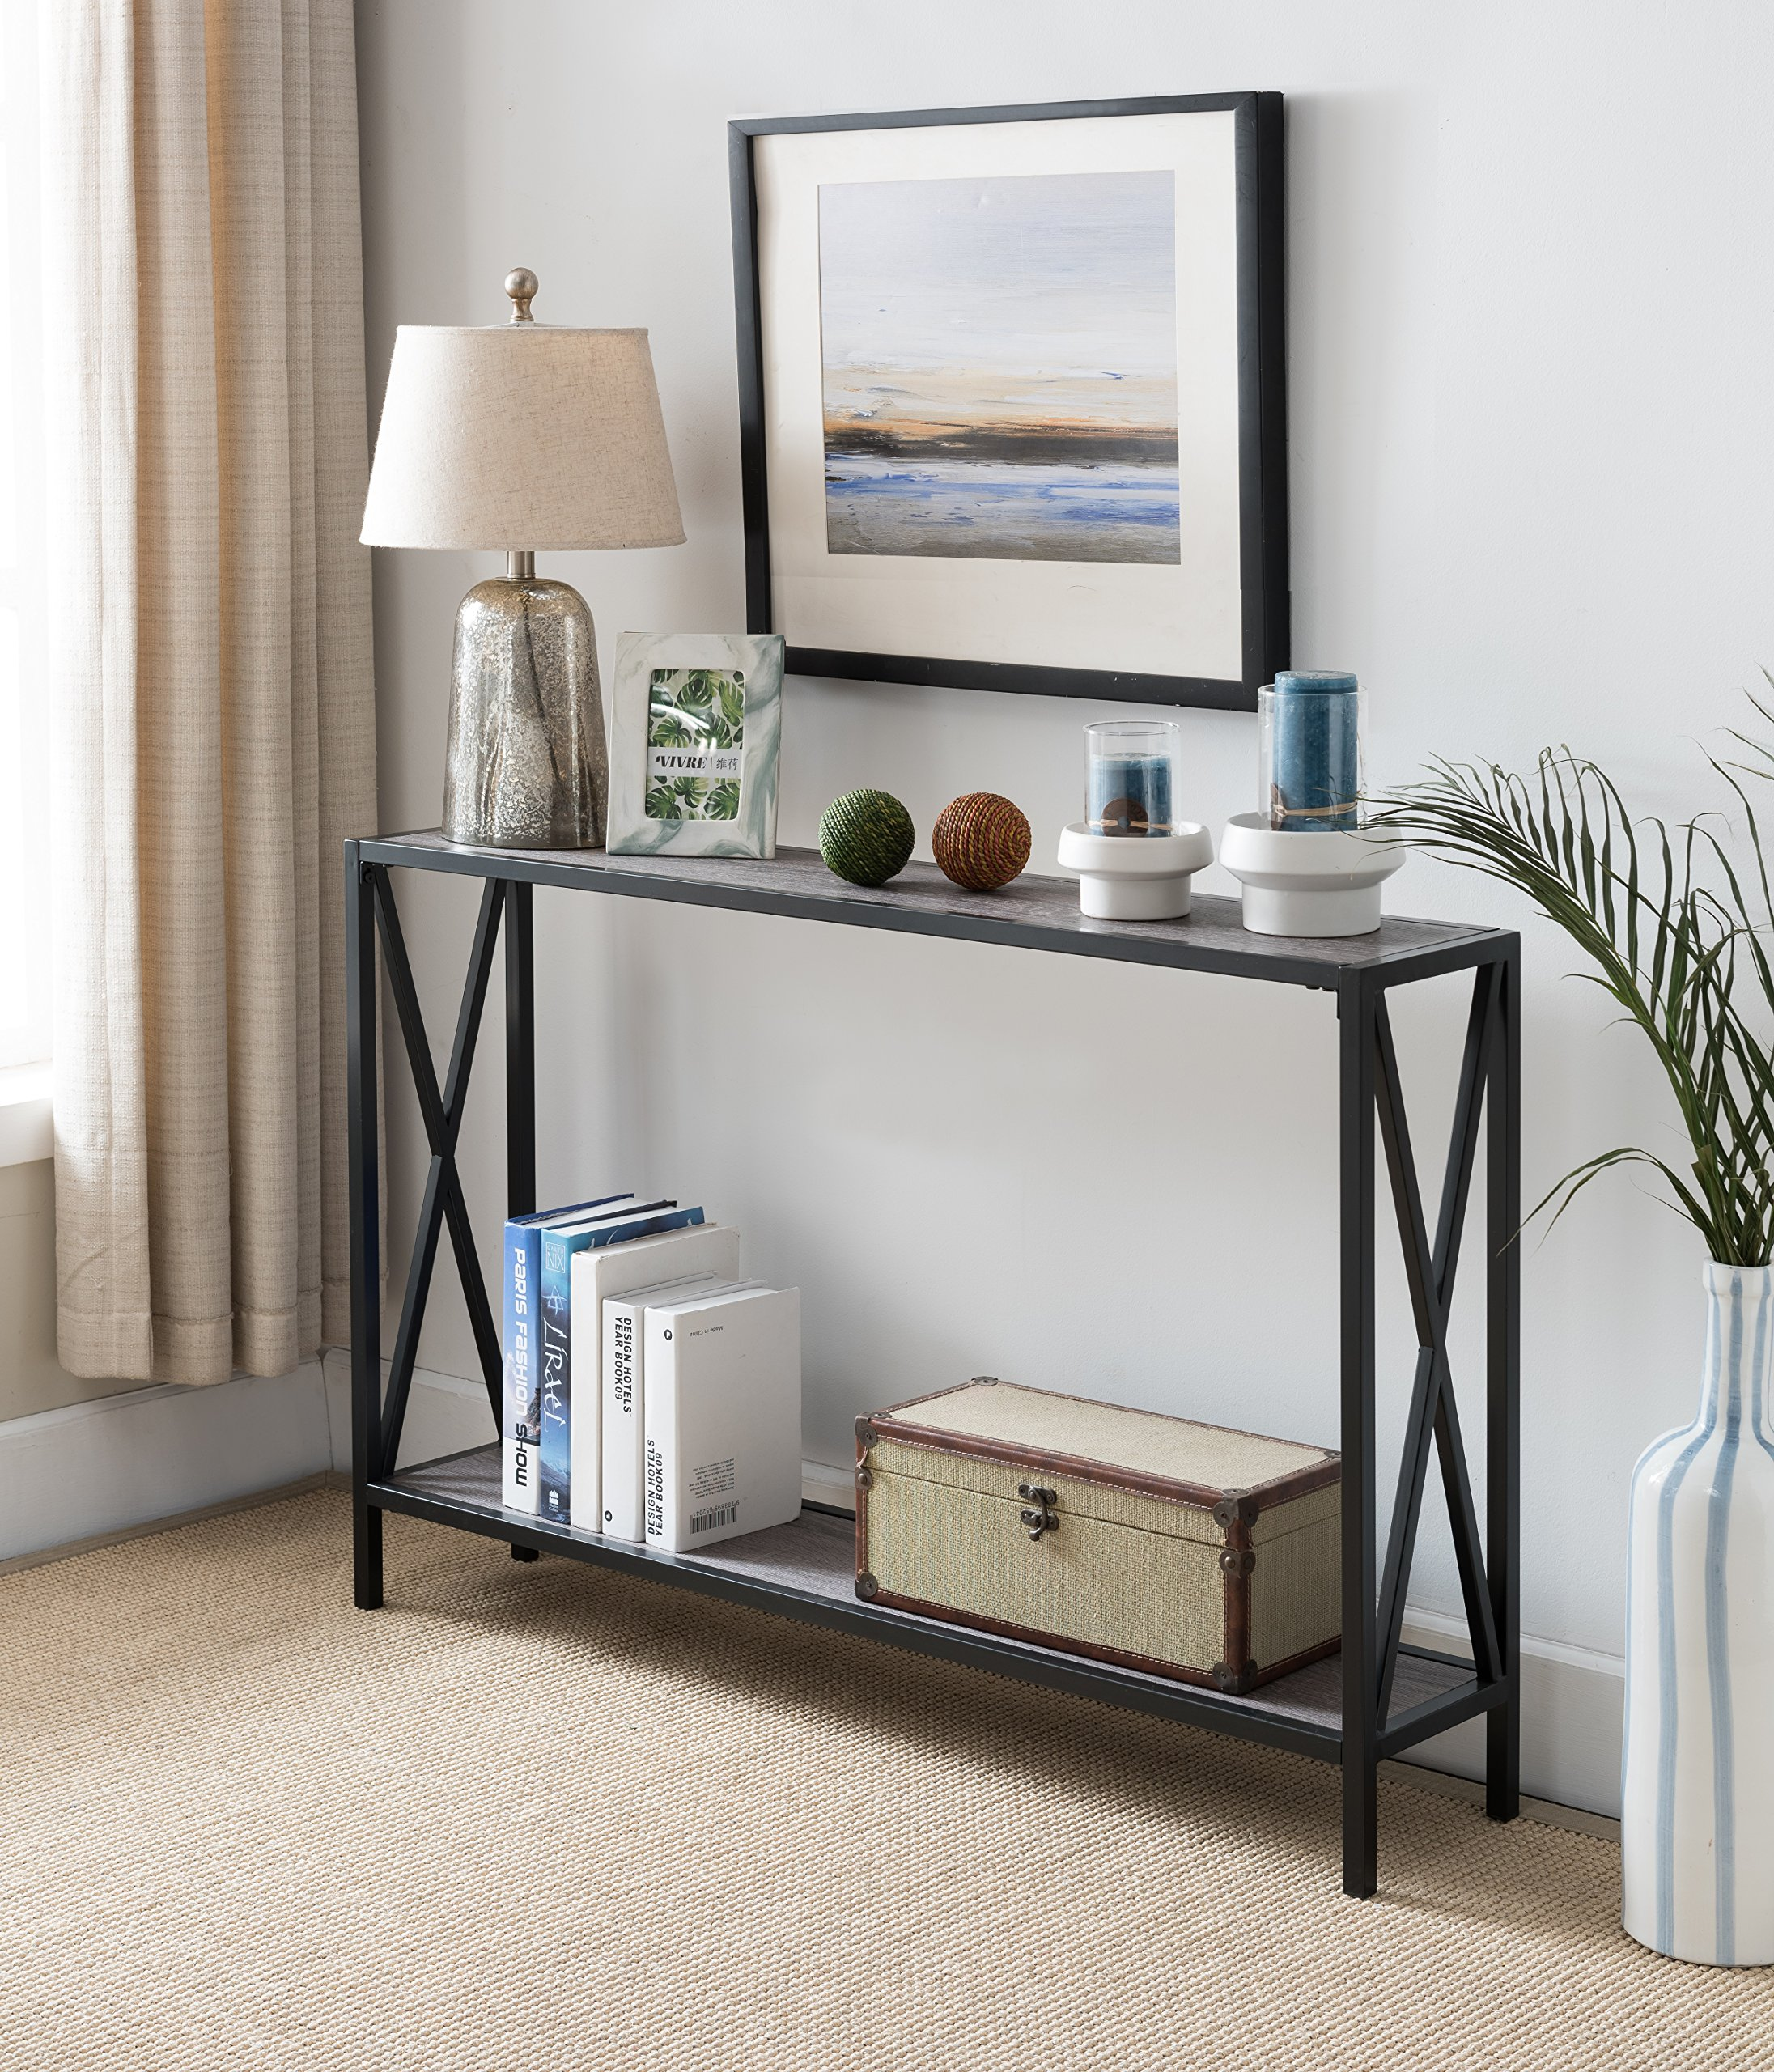 Grey/Black Metal Frame 2-Tier Entryway Console Sofa Table with X-Design Sides - Color: Grey and Black Material: Metal, MDF/Hardwood Features X-design on the sides with lower Shelf - living-room-furniture, living-room, console-tables - A1DXDj85%2BmL -